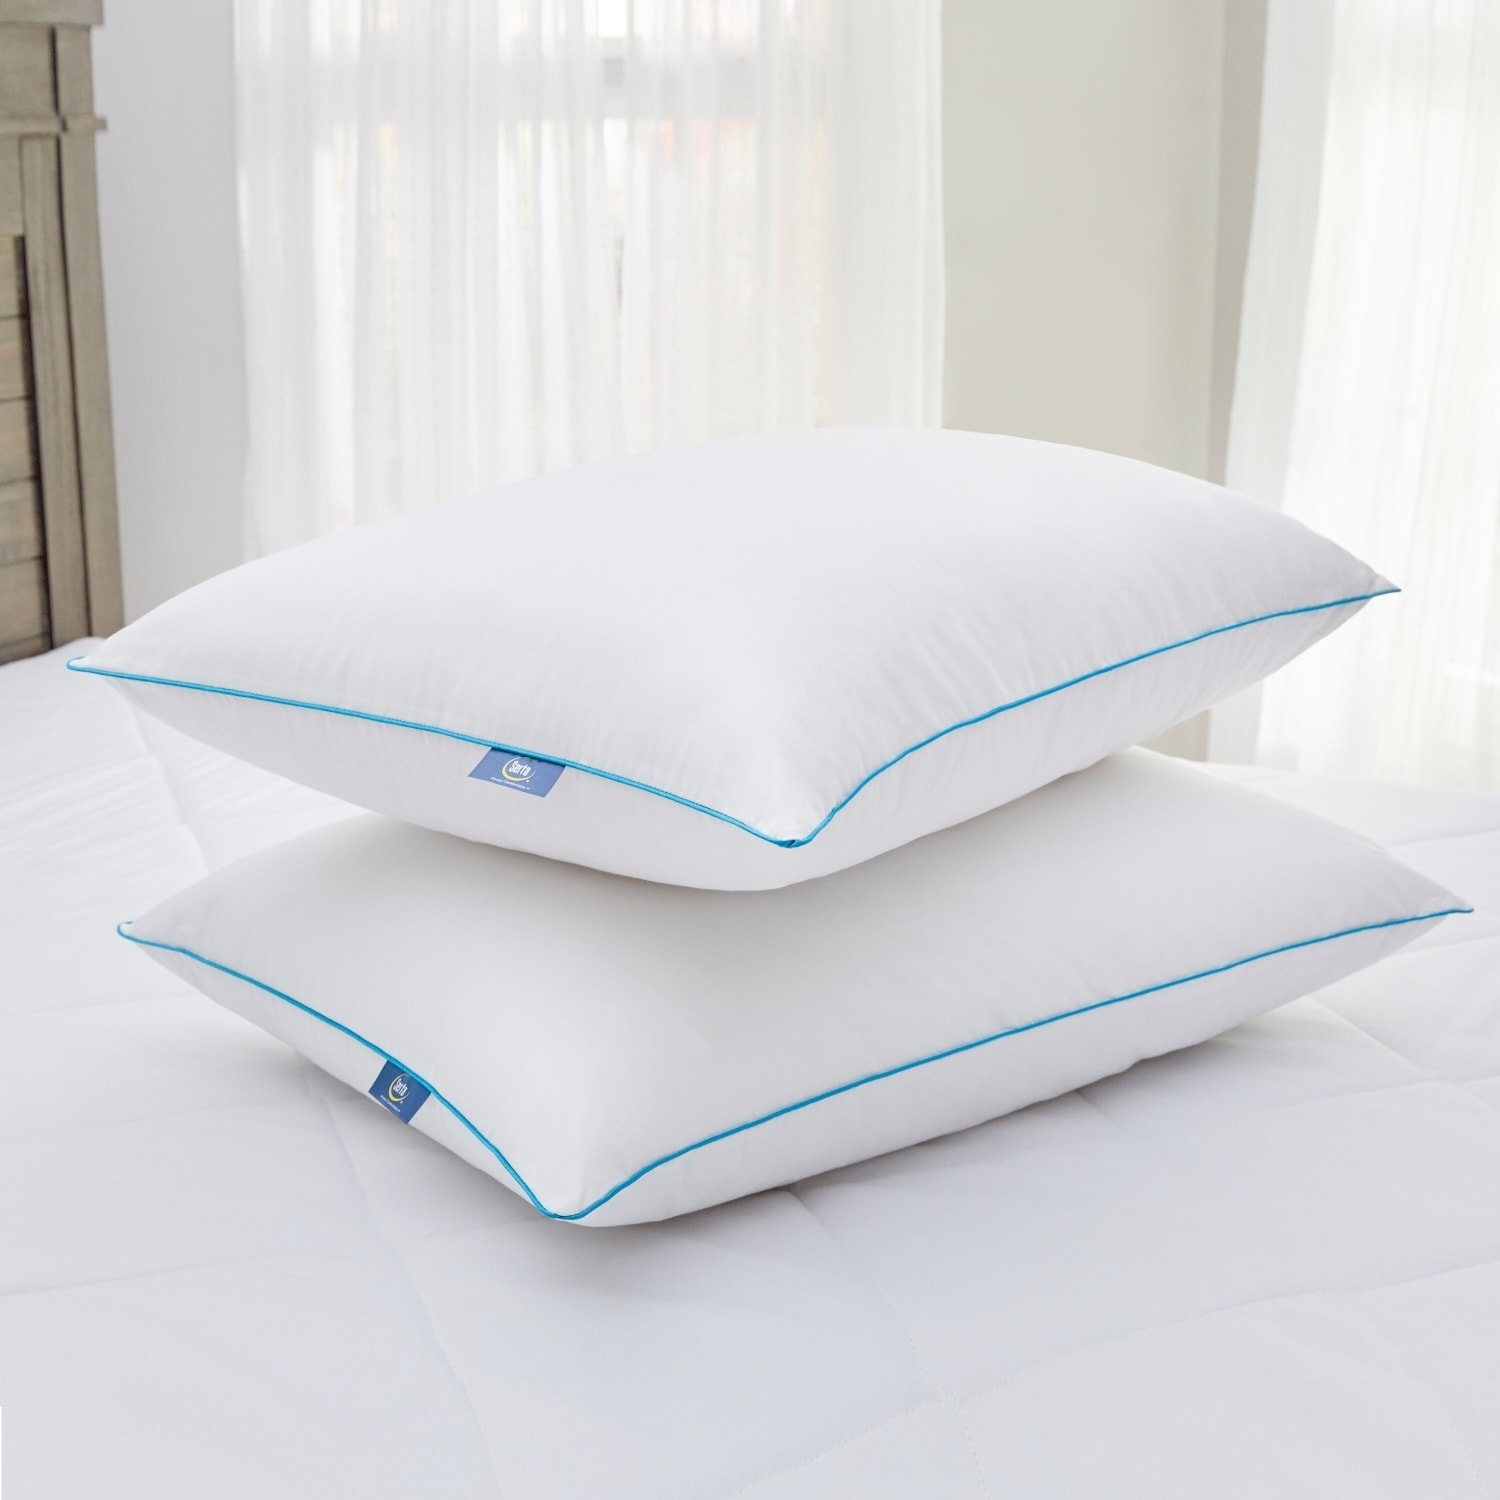 rest foam conventional shipping free cool gel memory tempure pillow product overstock sleep bed on bath orders over arctic blue bedding